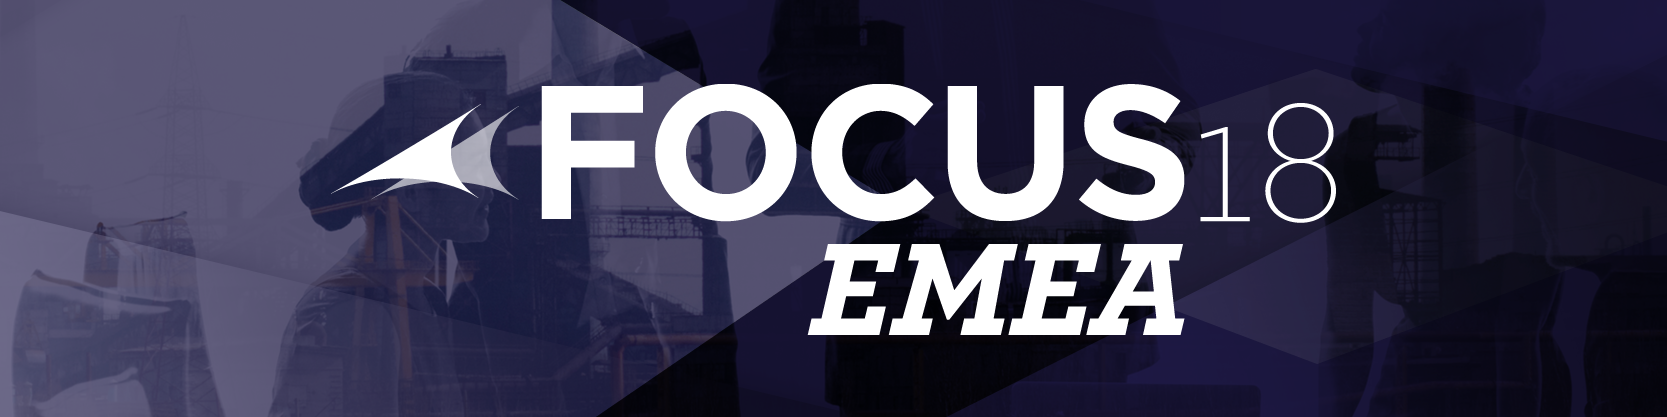 Focus EMEA 2018 London